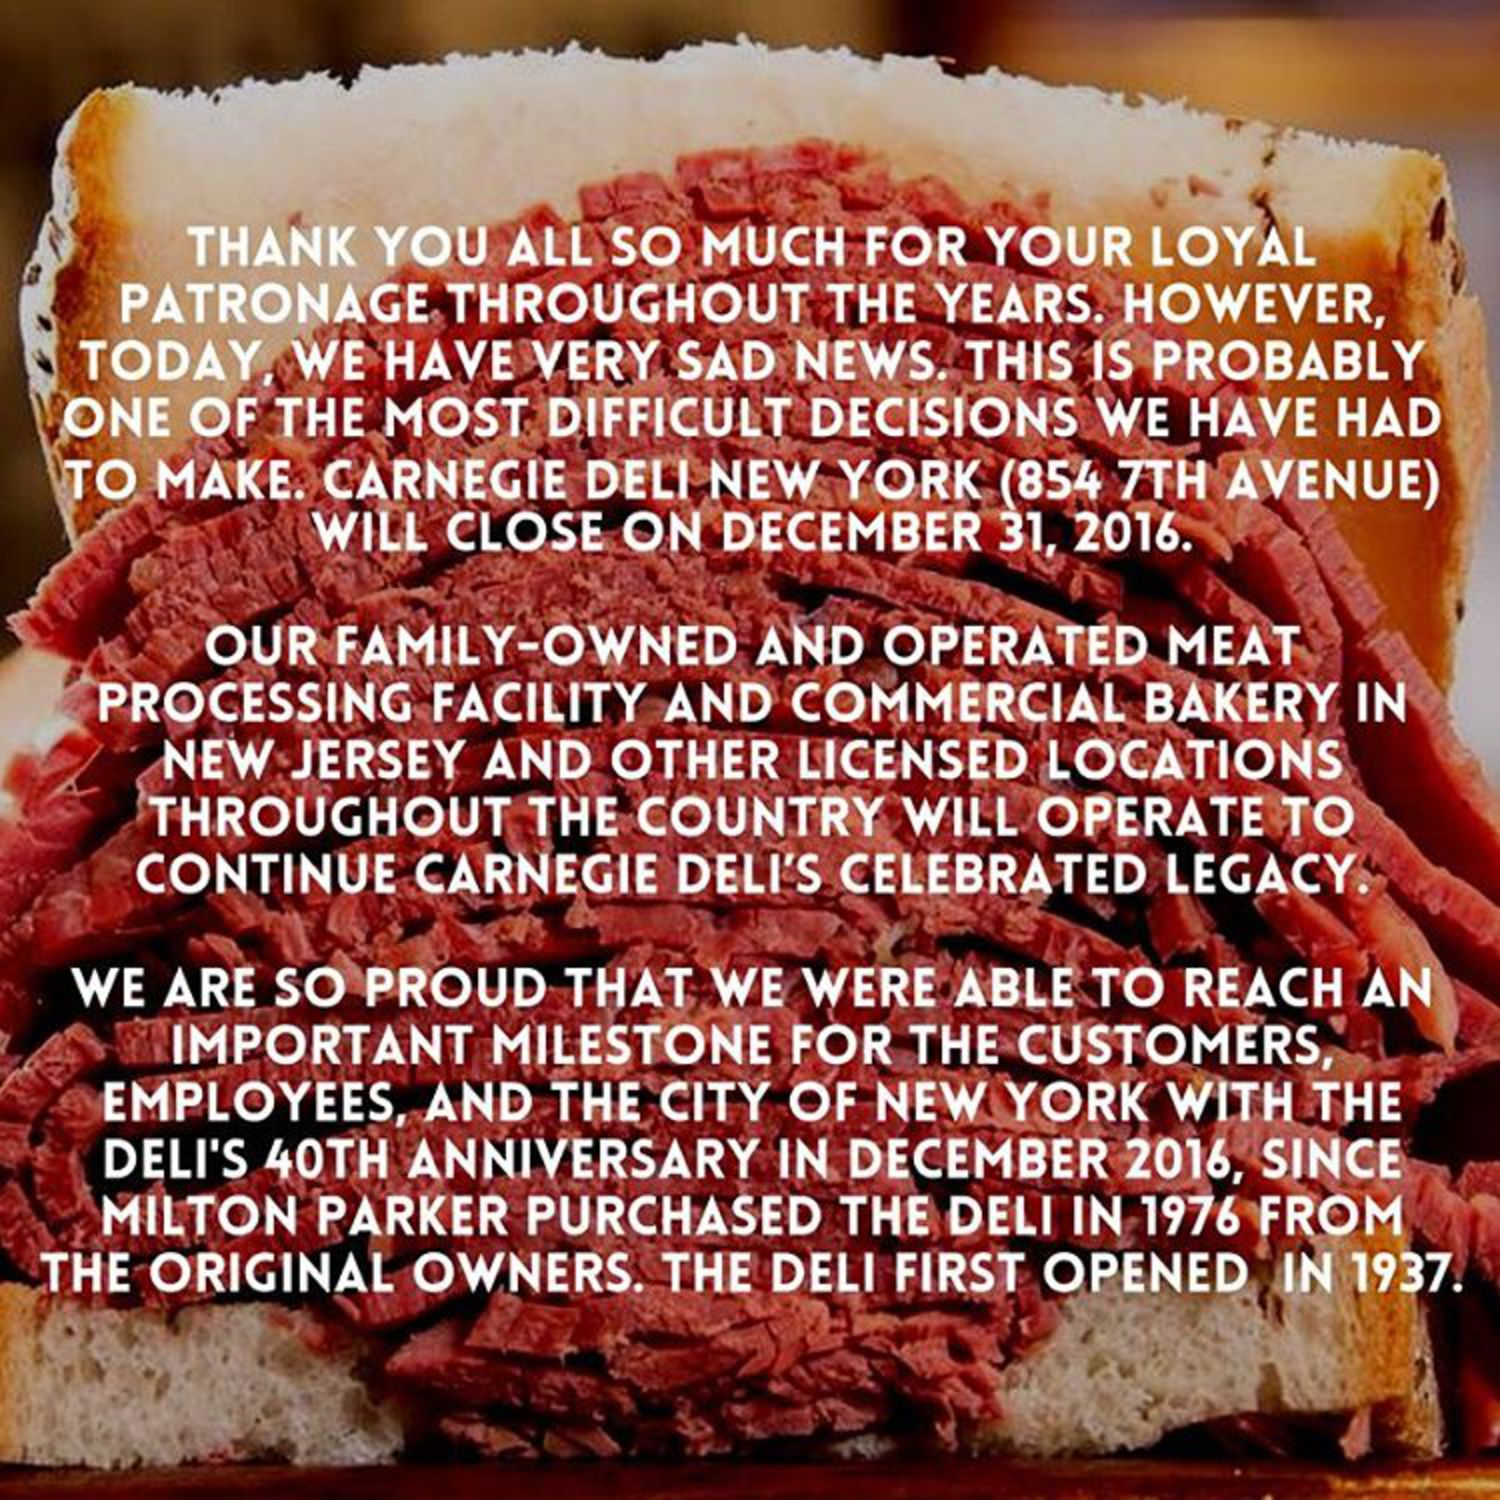 Carnegie Deli New York at 854 7th Avenue is Closing on December 31, 2016.